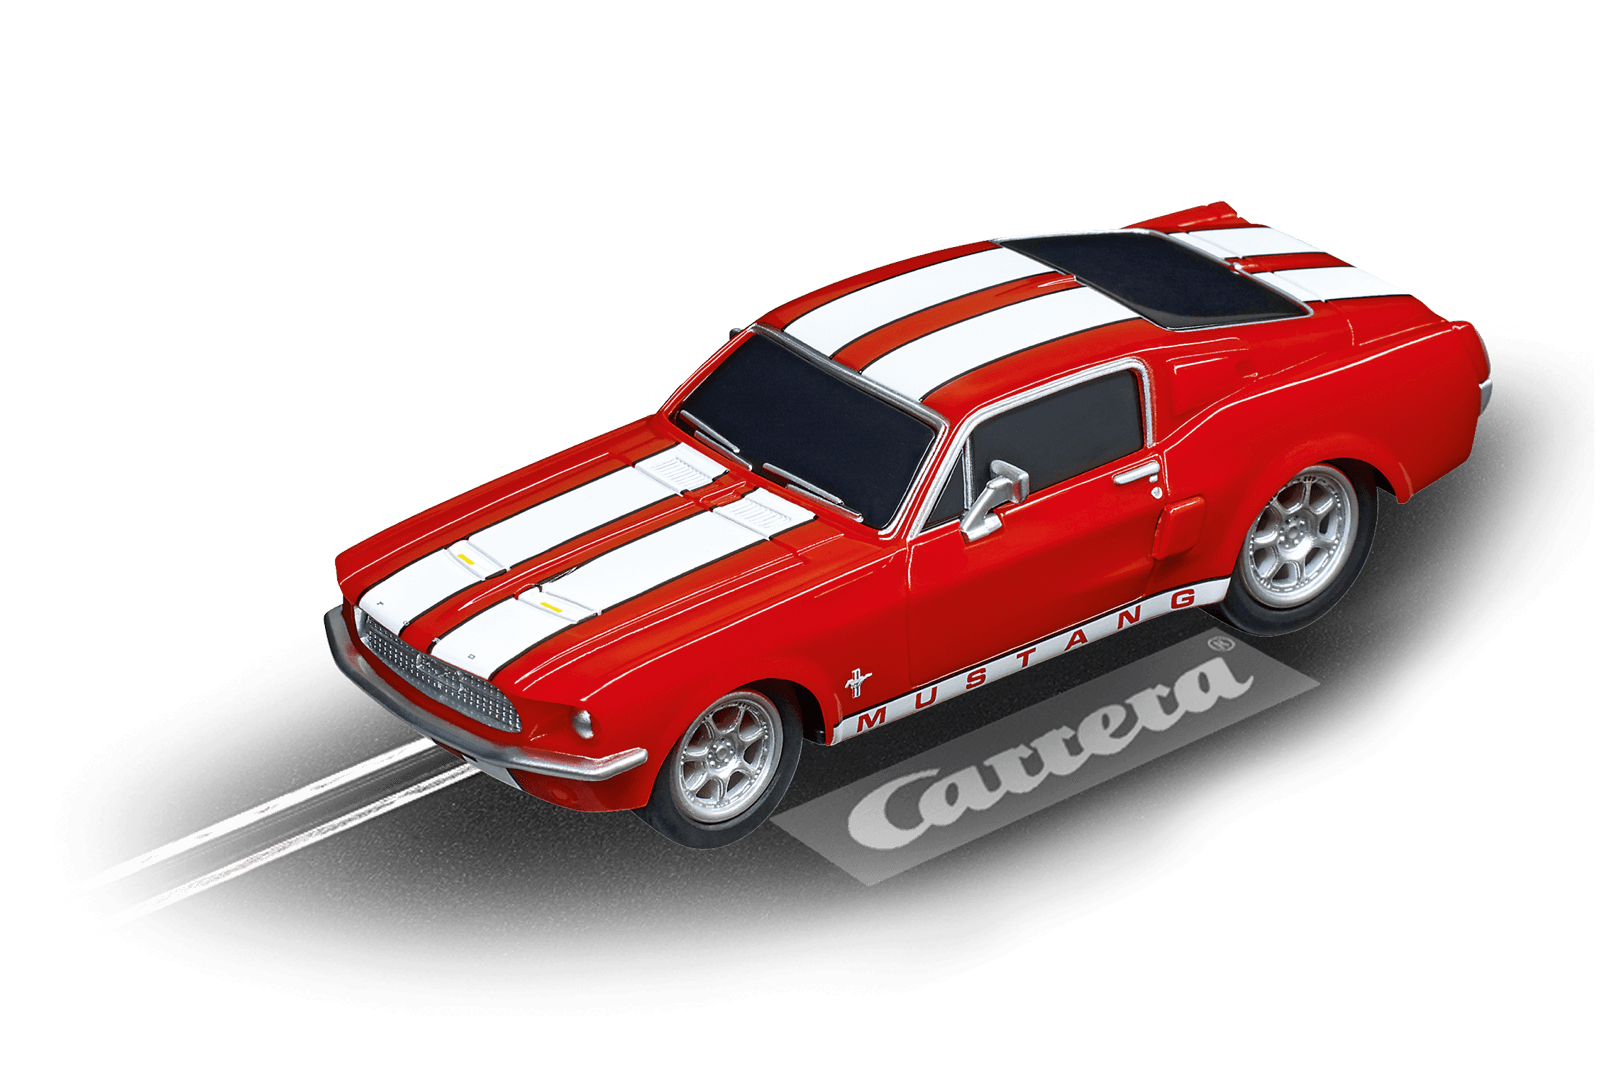 Carrera 64120 GO! Ford Mustang '67 Racing Red